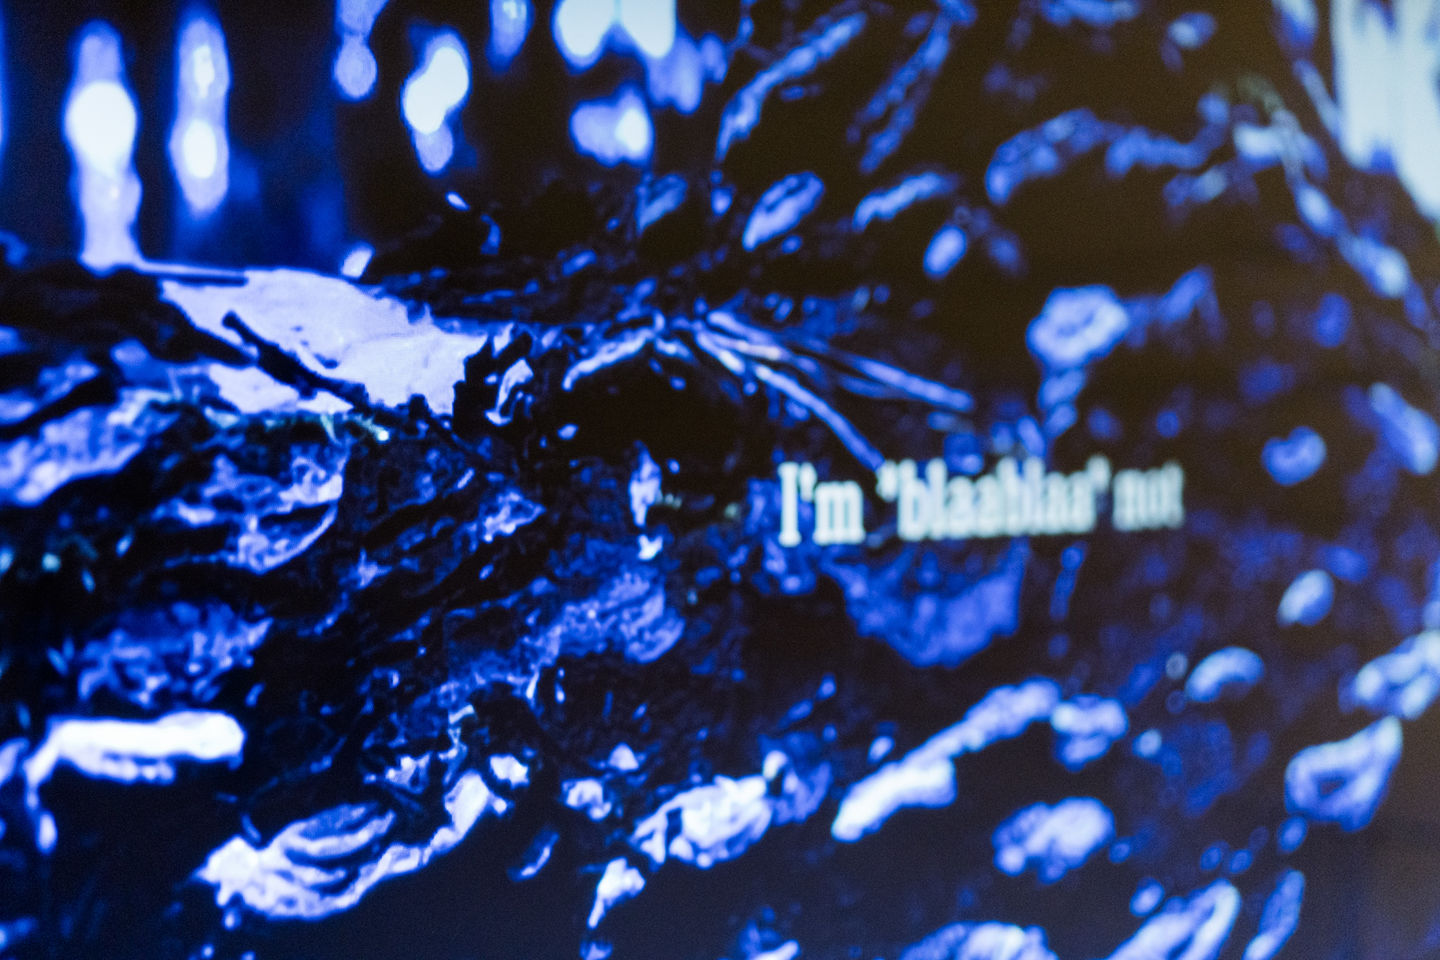 Close up of a digital piece showing swirls of blue and some fictional text laid over the top